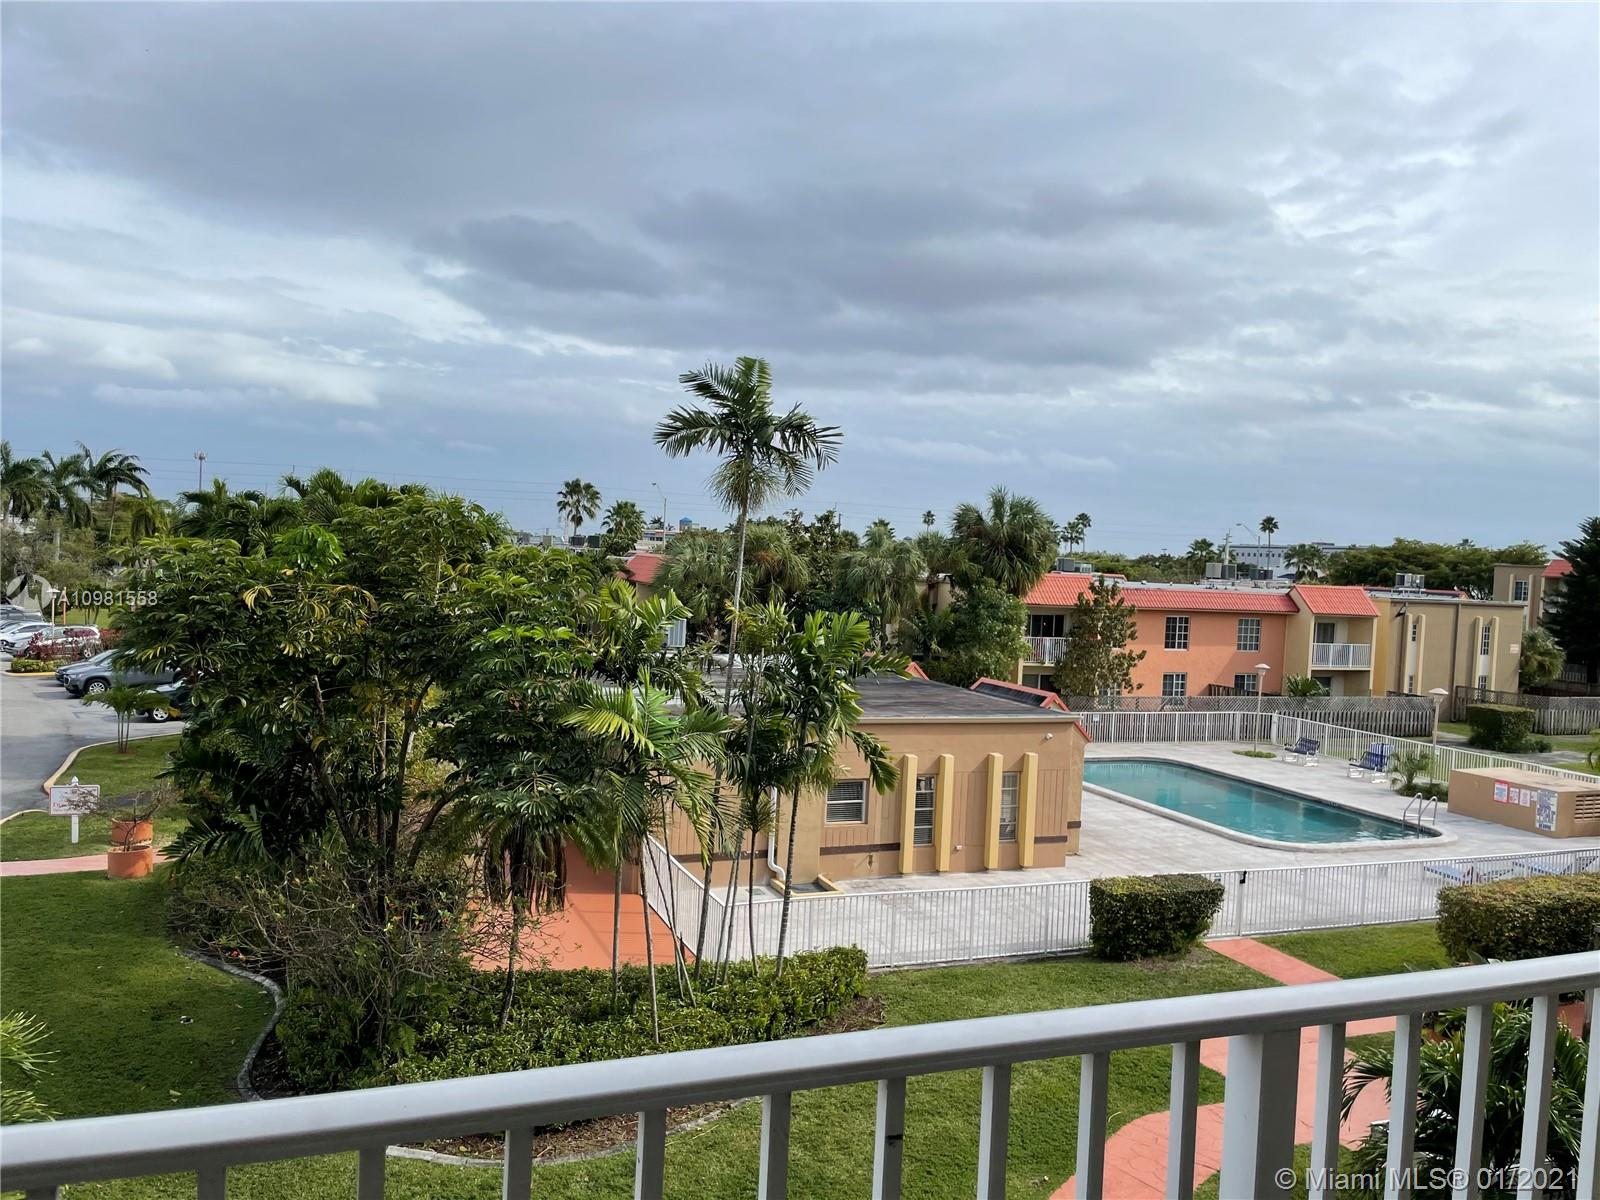 4920 NW 79th Ave # 312, Doral, Florida 33166, 1 Bedroom Bedrooms, ,1 BathroomBathrooms,Residential Lease,For Rent,4920 NW 79th Ave # 312,A10981558